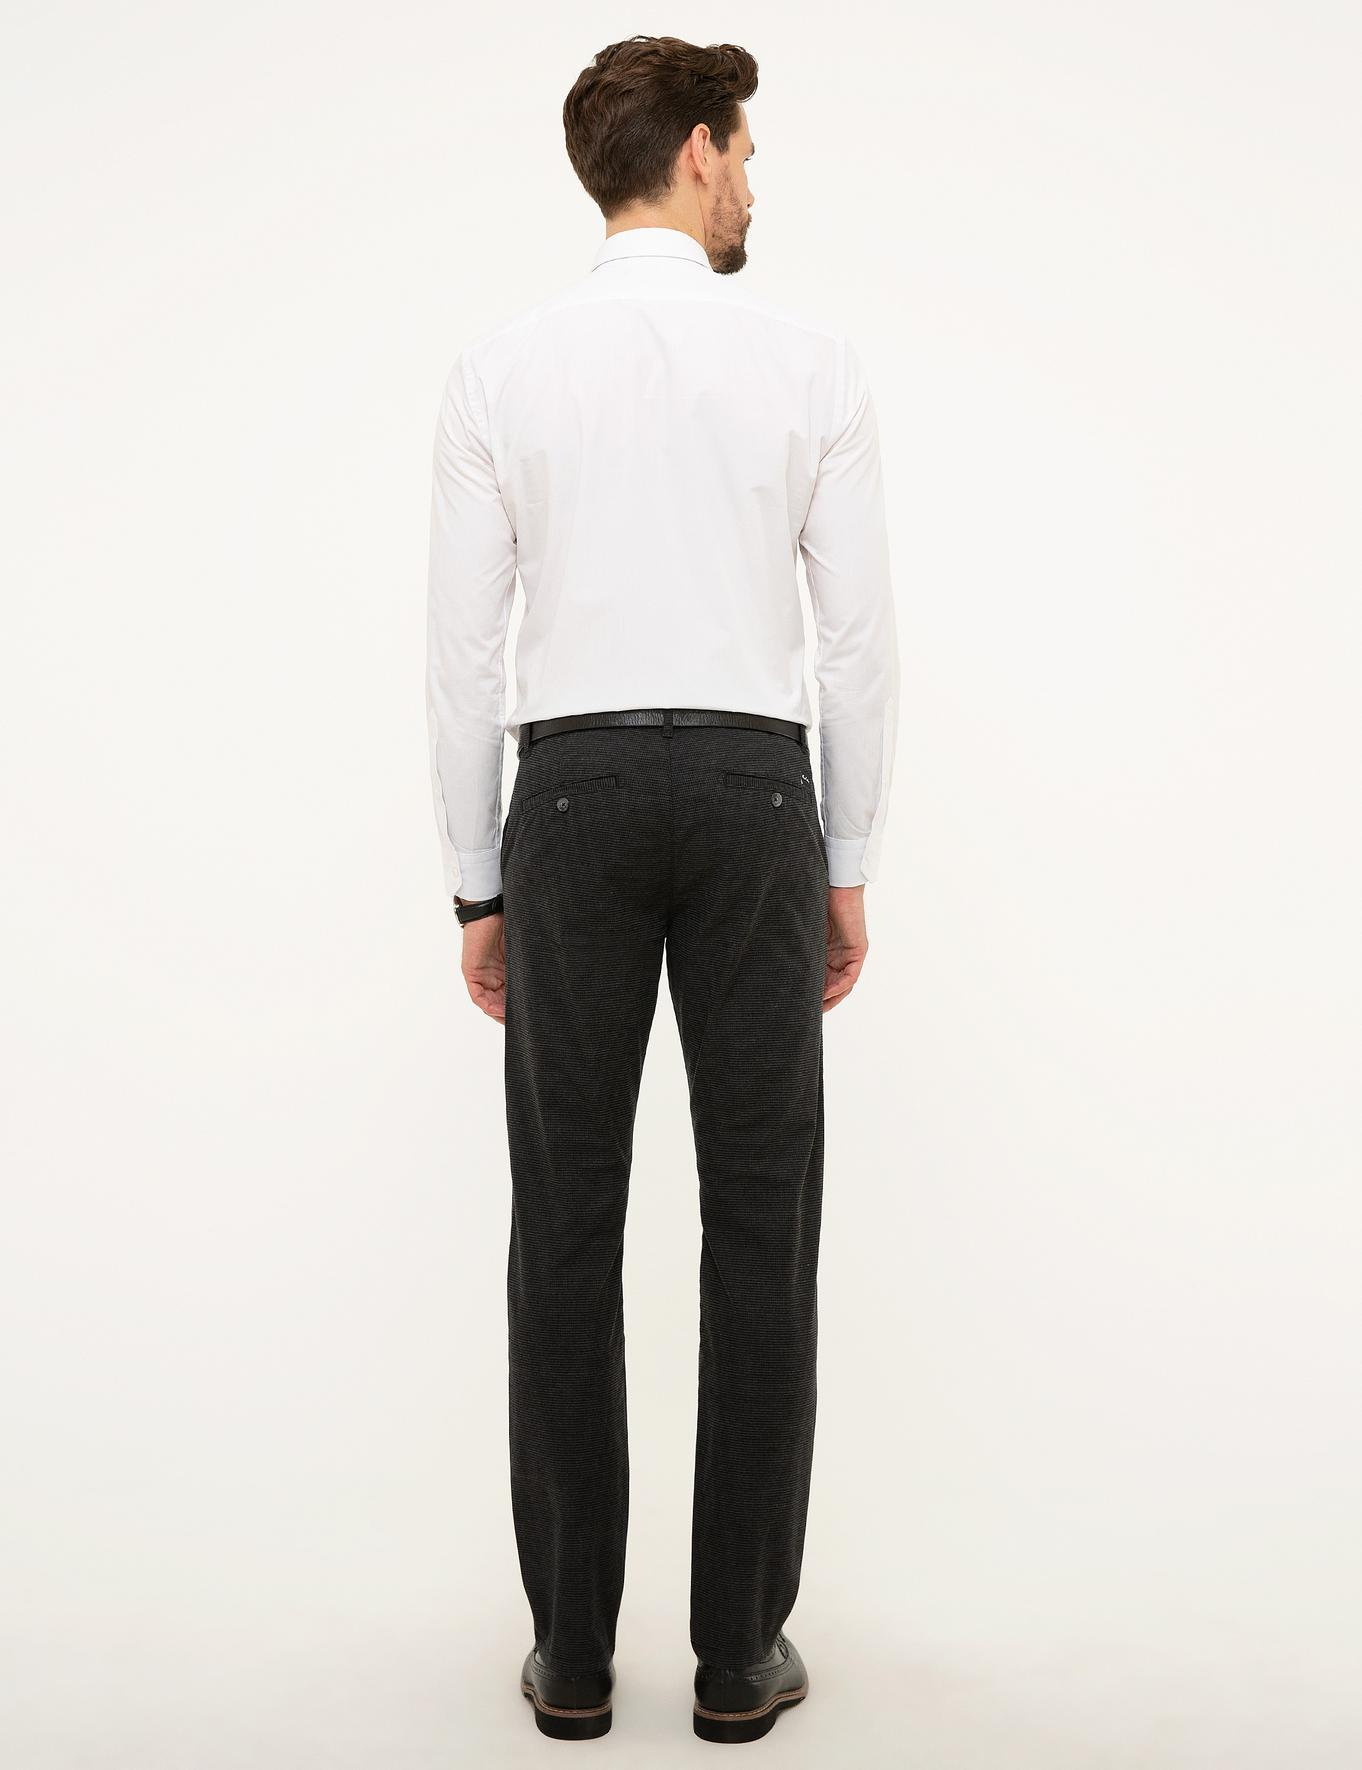 Antrasit Gri Slim Fit Chino Pantolon